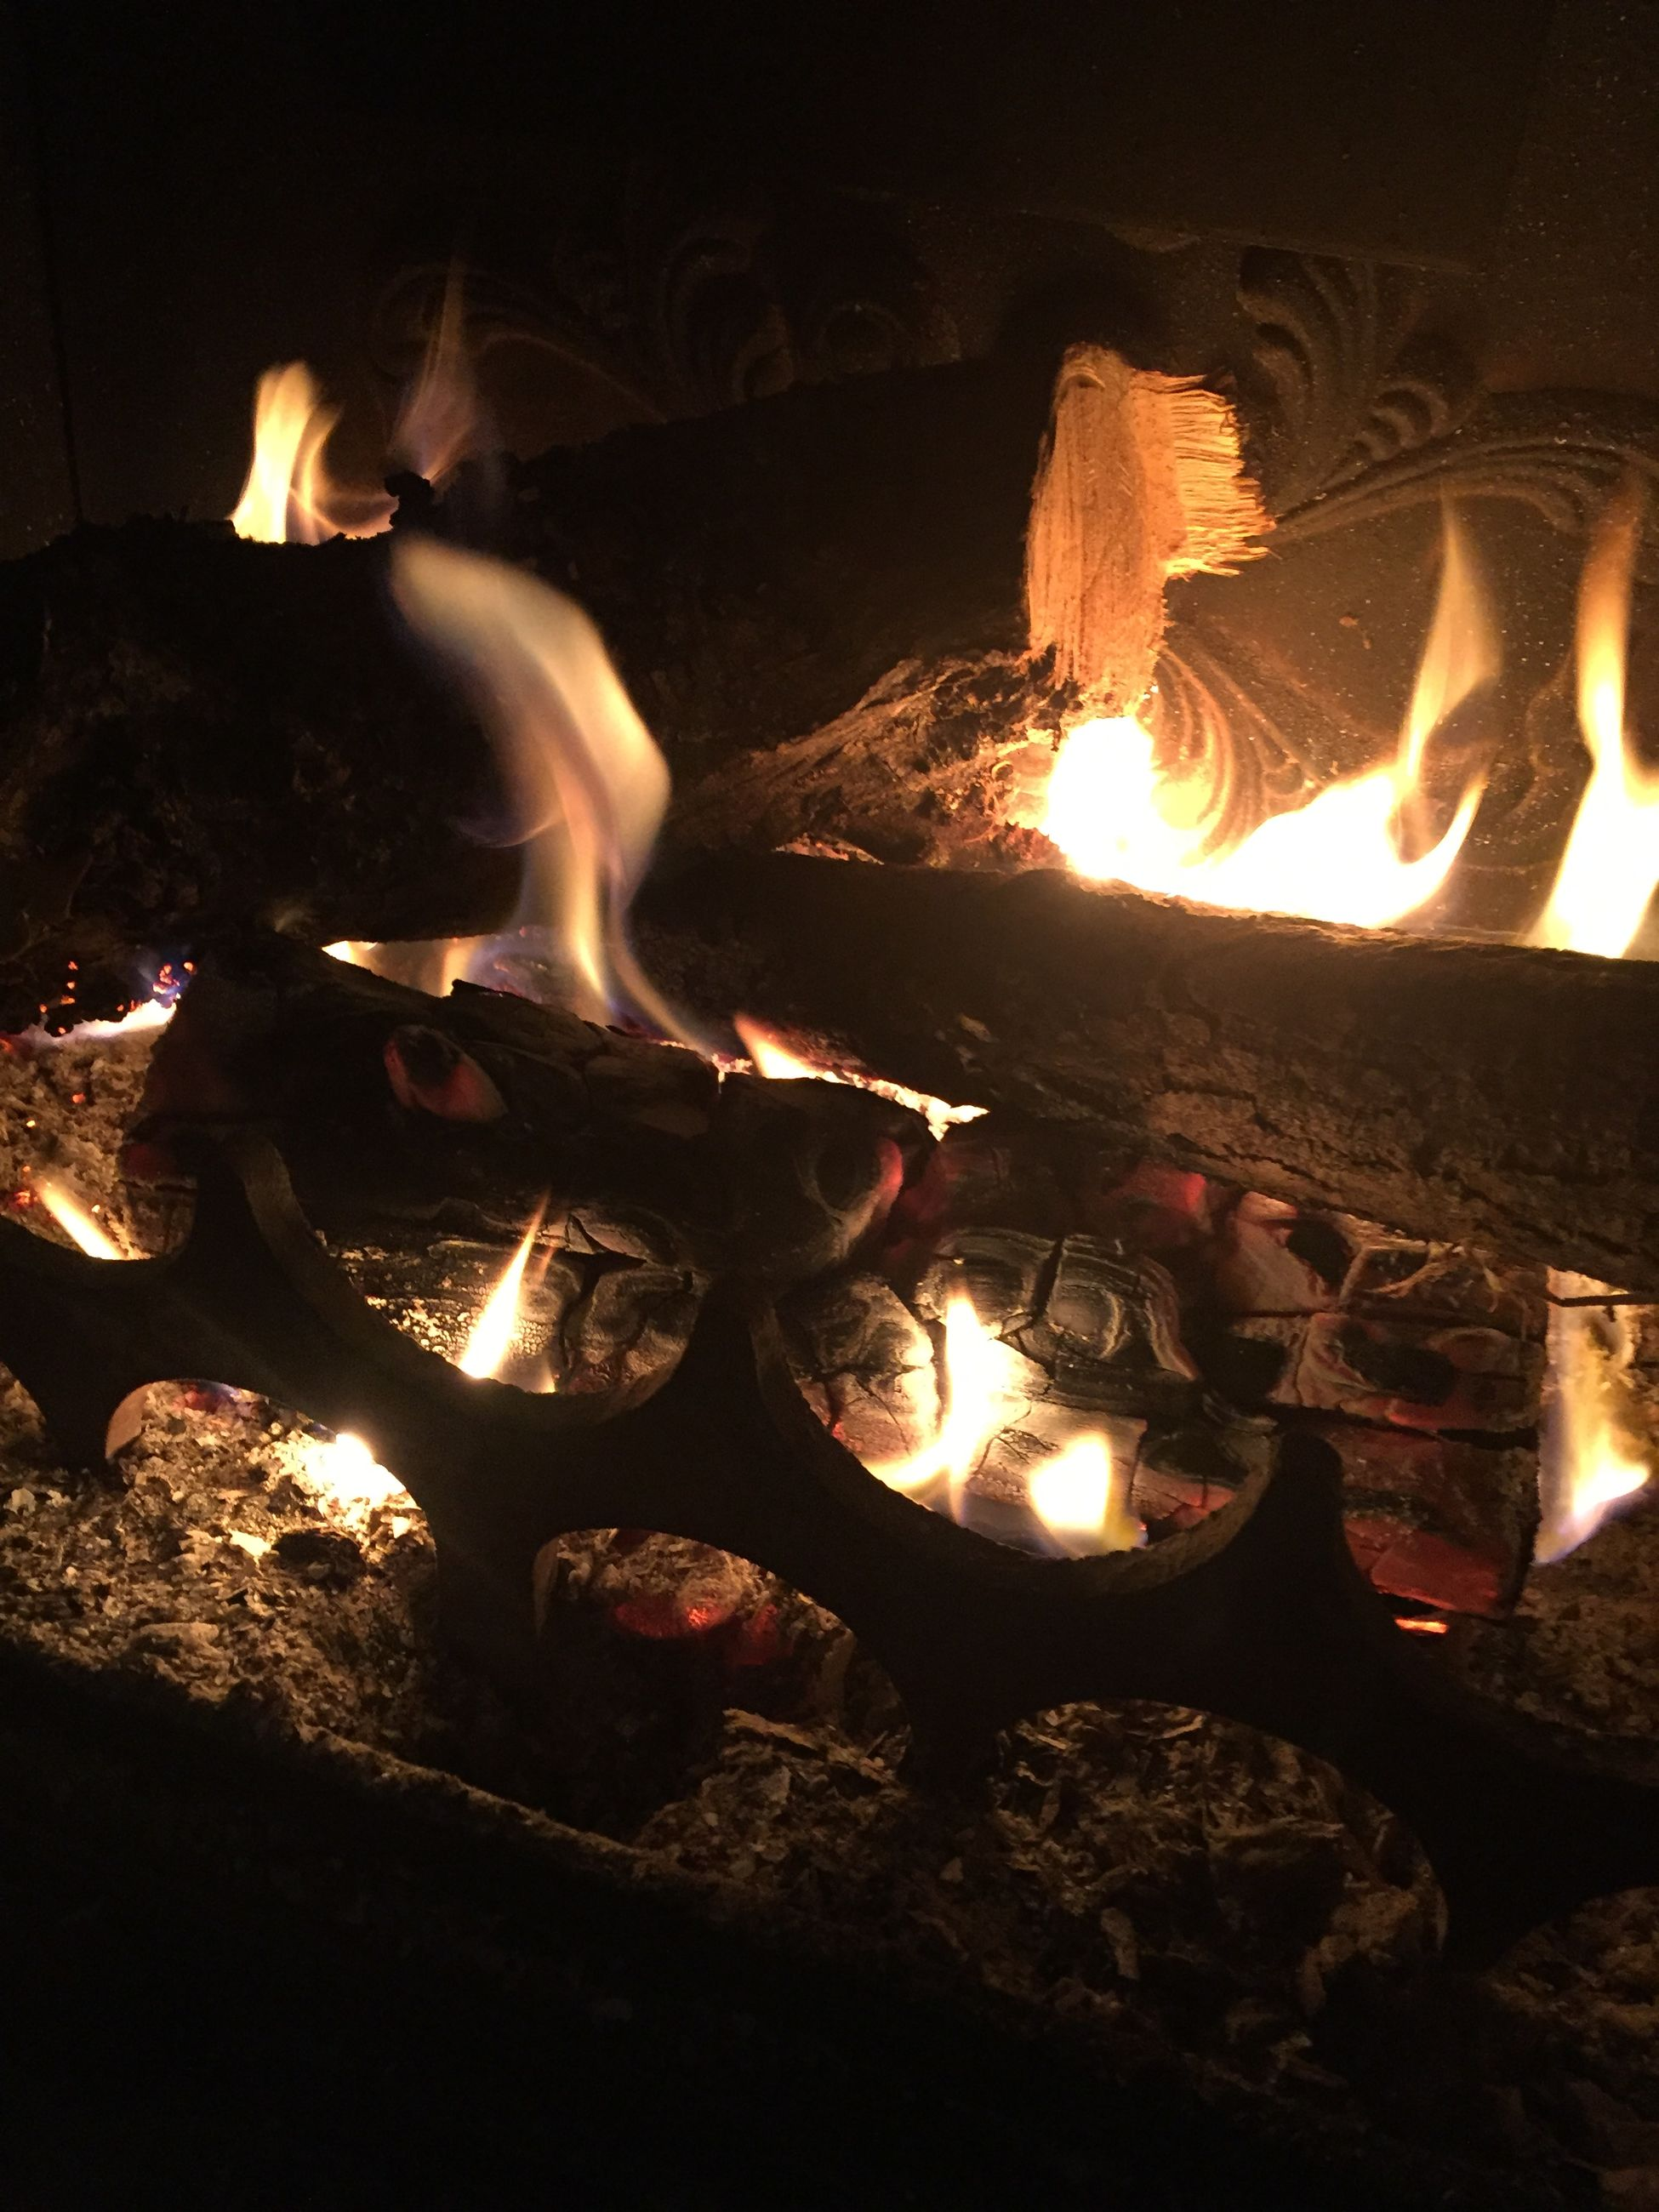 indoors, illuminated, flame, burning, night, glowing, candle, fire - natural phenomenon, dark, heat - temperature, lighting equipment, light - natural phenomenon, lit, darkroom, home interior, close-up, no people, reflection, high angle view, wood - material